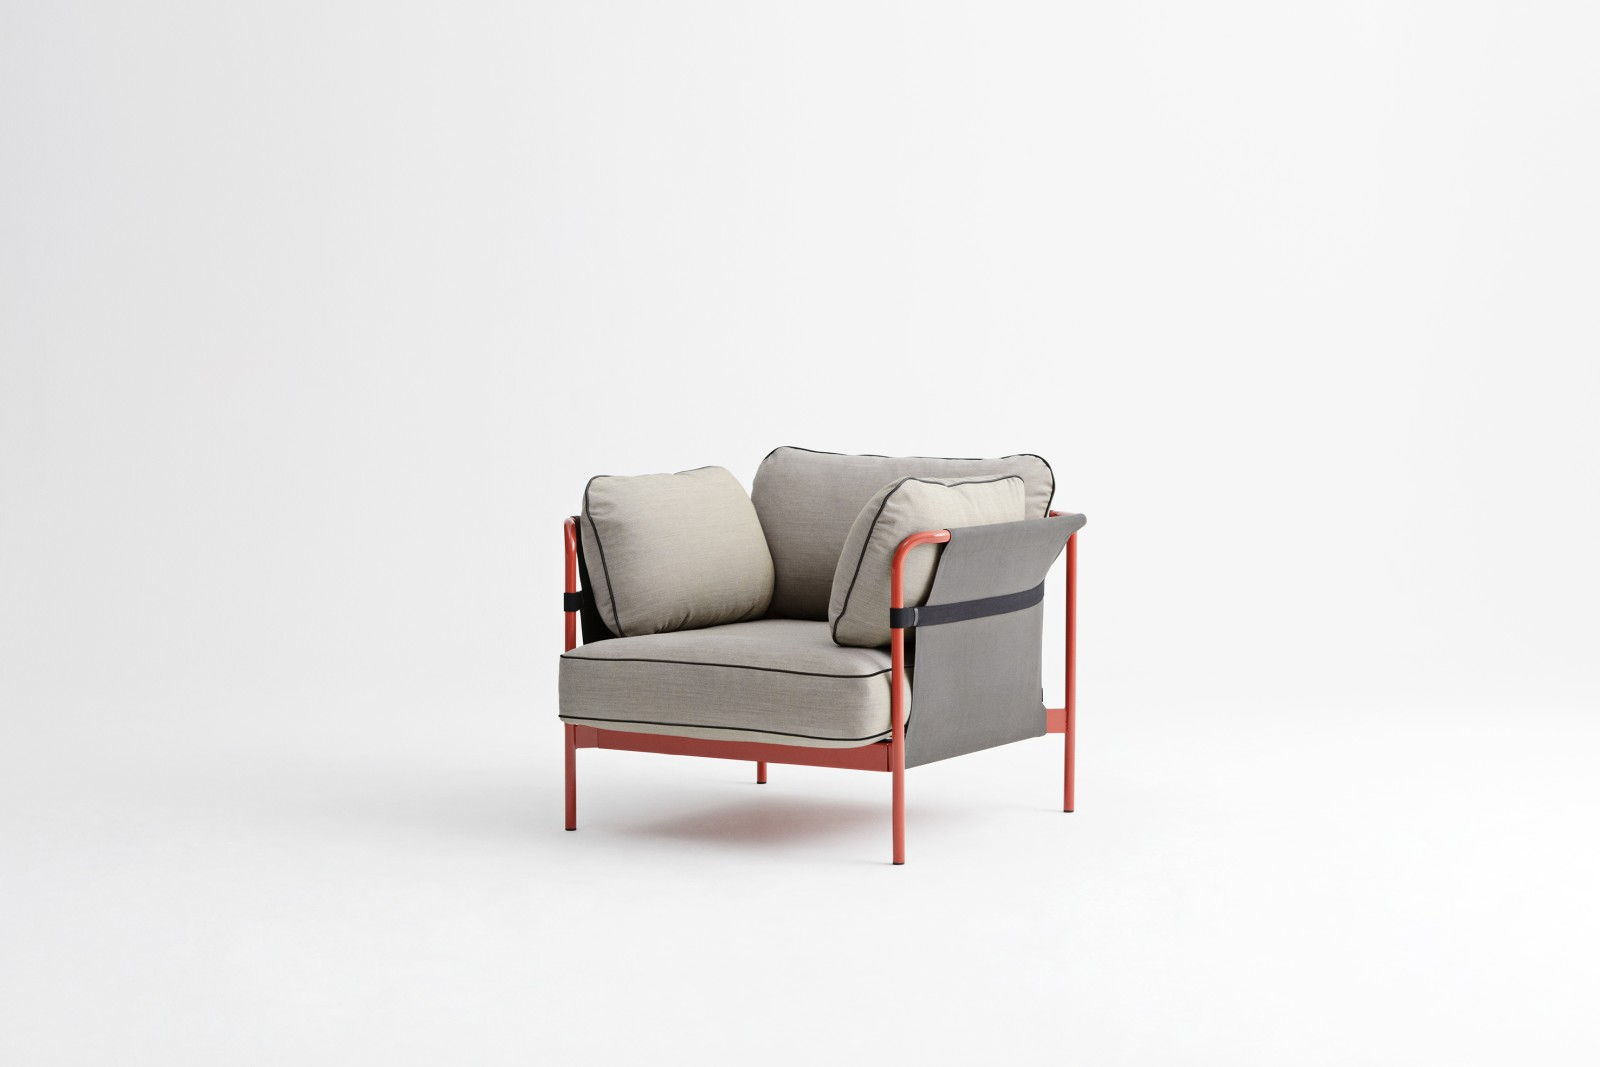 Can Lounge Chair From Hay In 2019 Lounge Chair Design